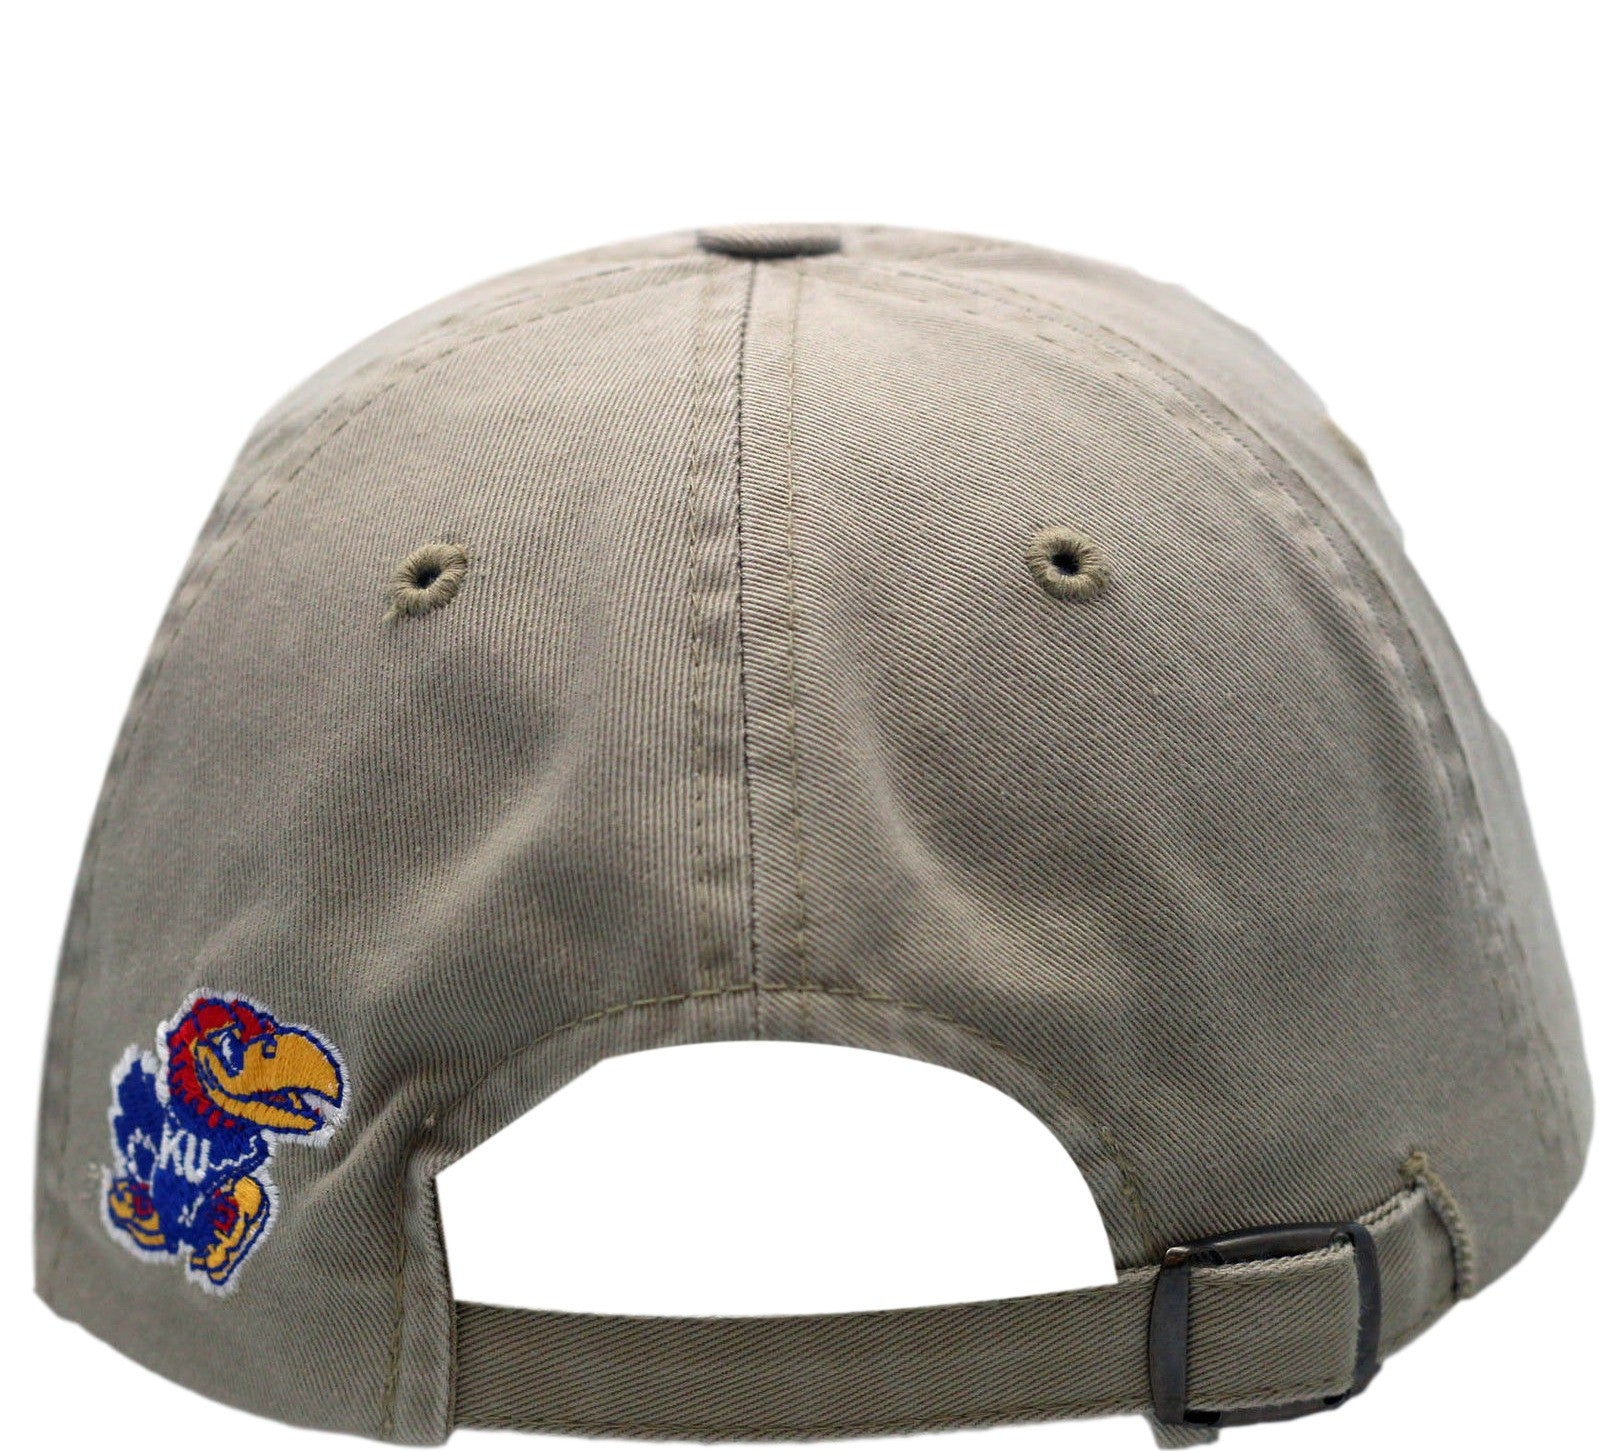 Jayhawks Retro Strapback Hat - And Still